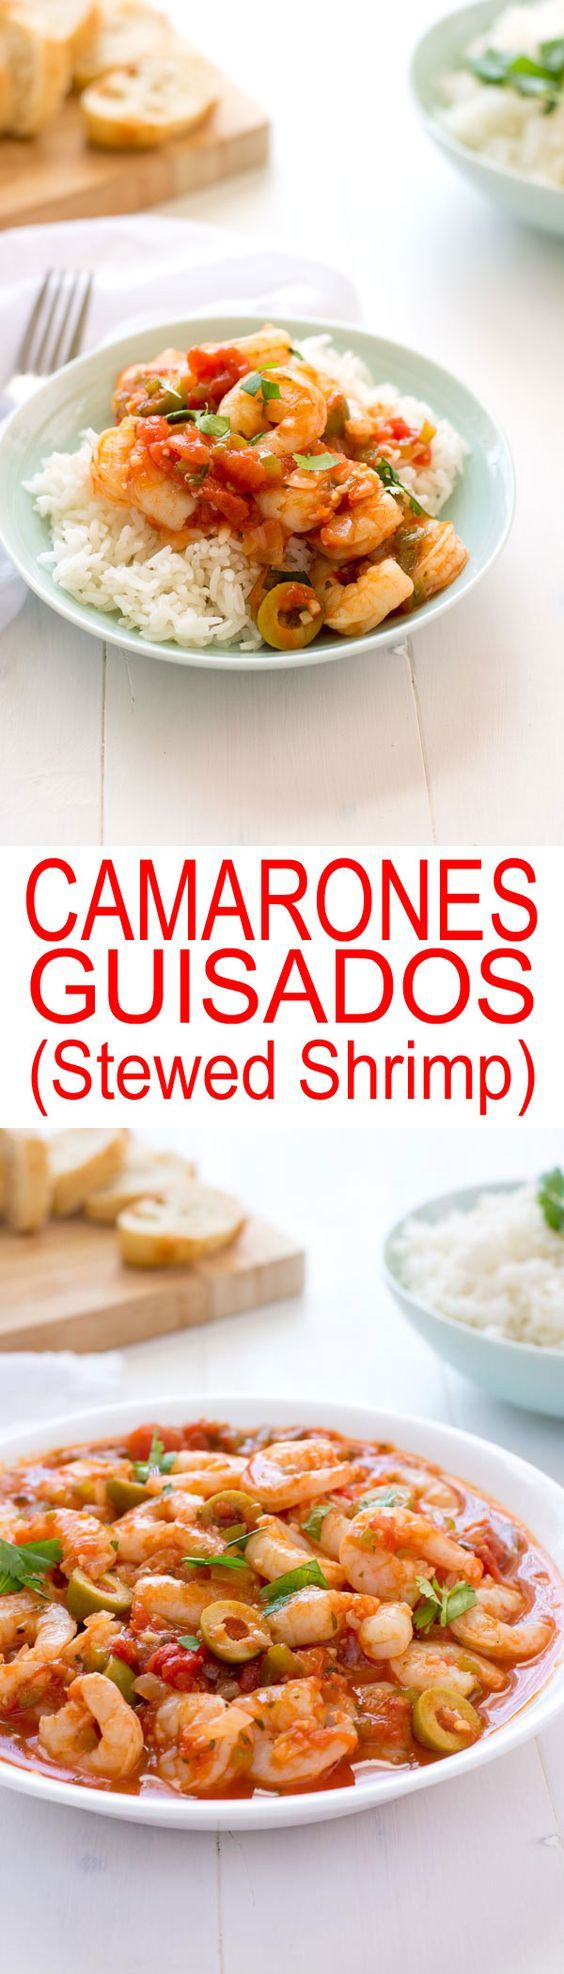 Cocina Criolla Best Puerto Rican Recipes And Food - Camarones guisados stewed shrimp boricua recipespuerto rican recipespuerto rican dishescaribbean